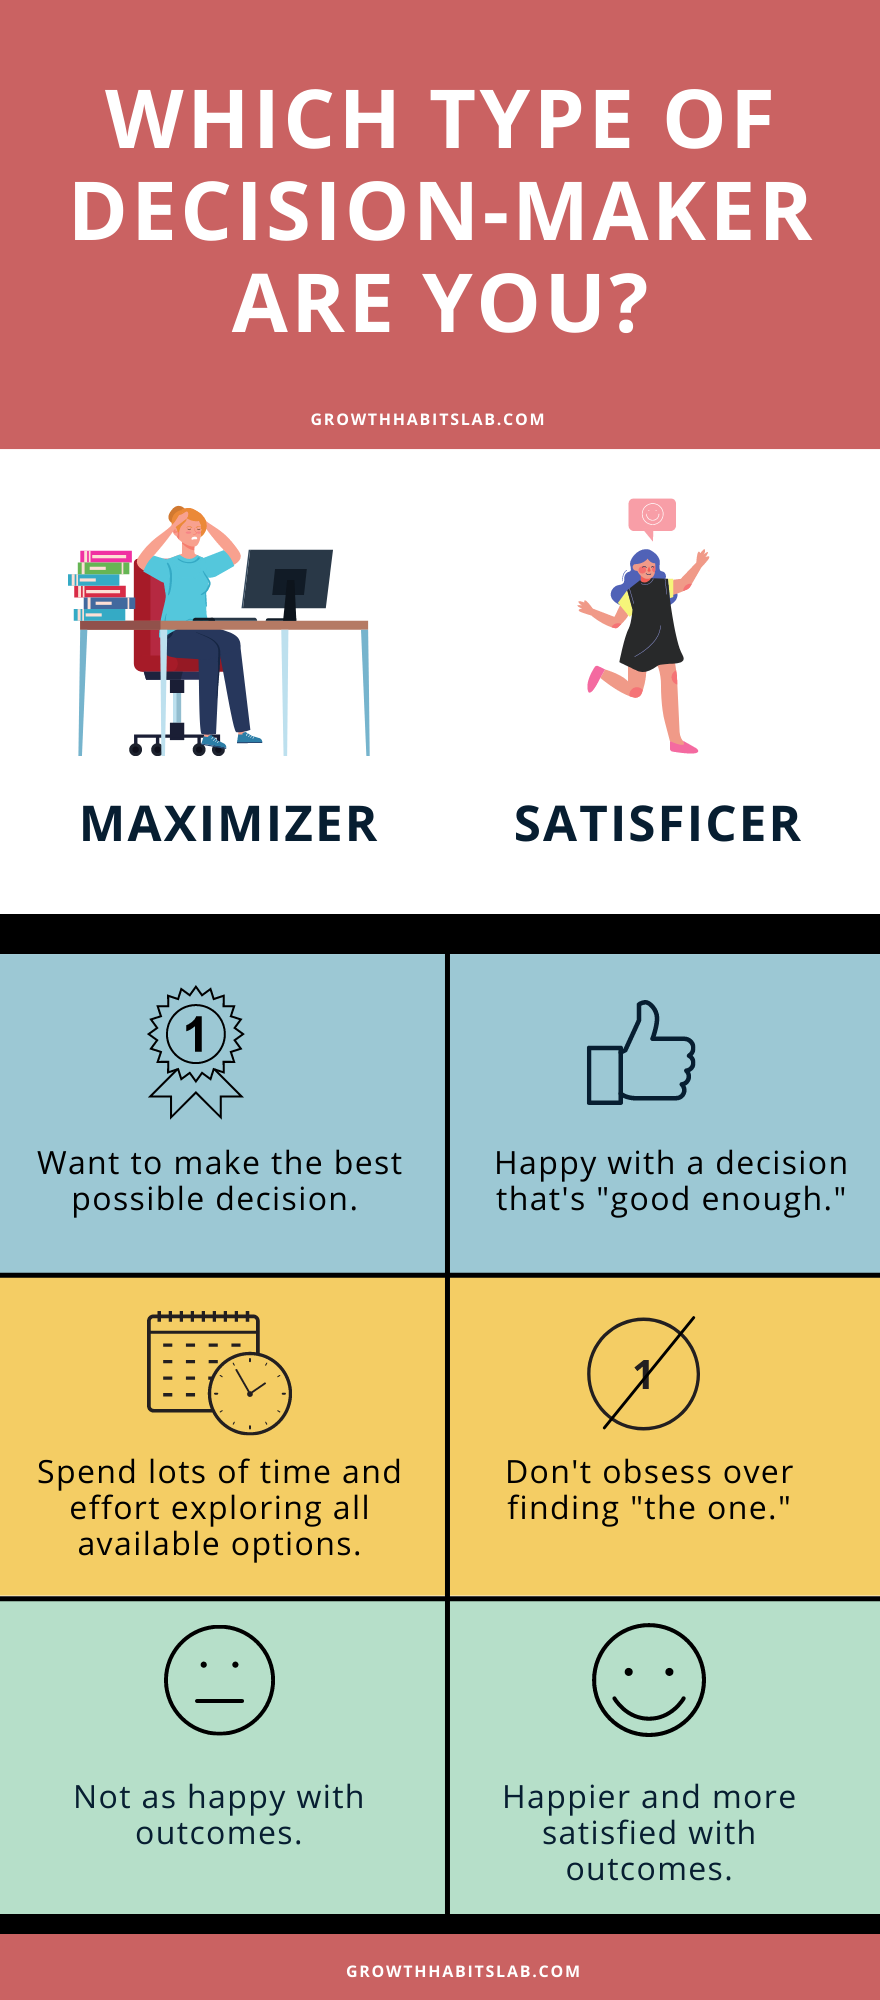 Which type of decision-maker are you, Maximizer or Satisficer?